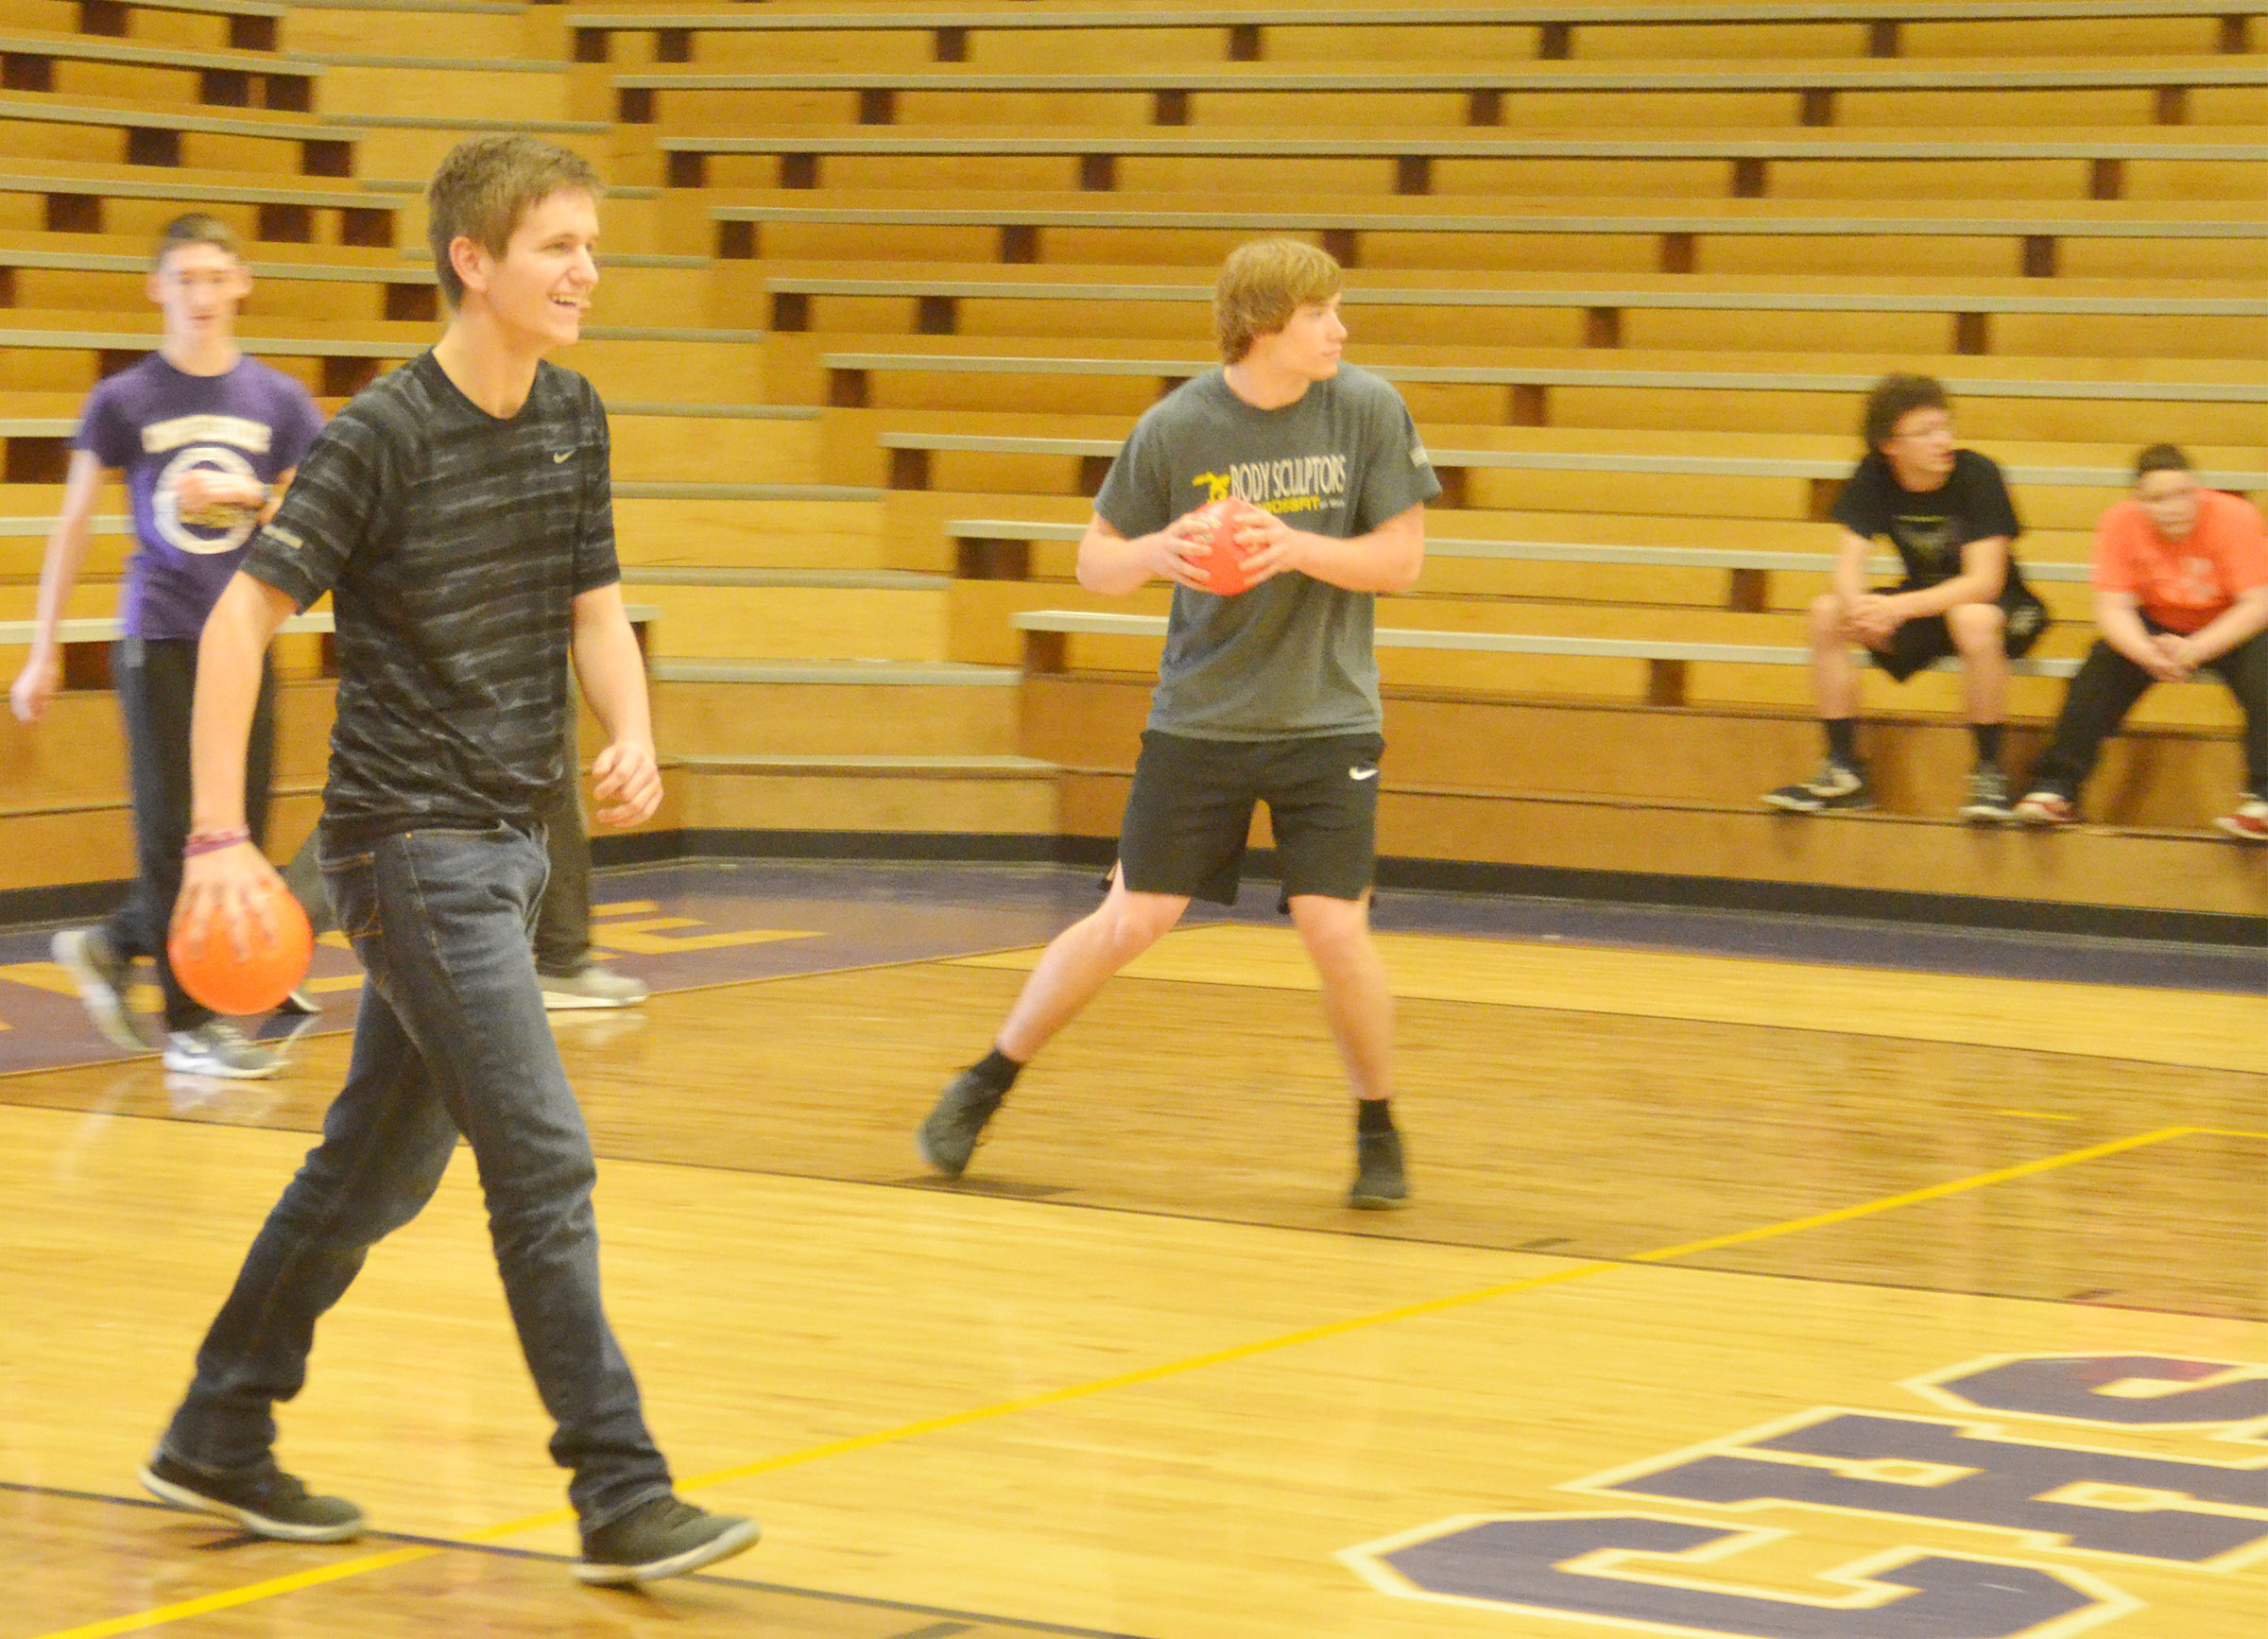 CHS sophomores Myles Murrell, at left, and Tristan Johnson play dodgeball.